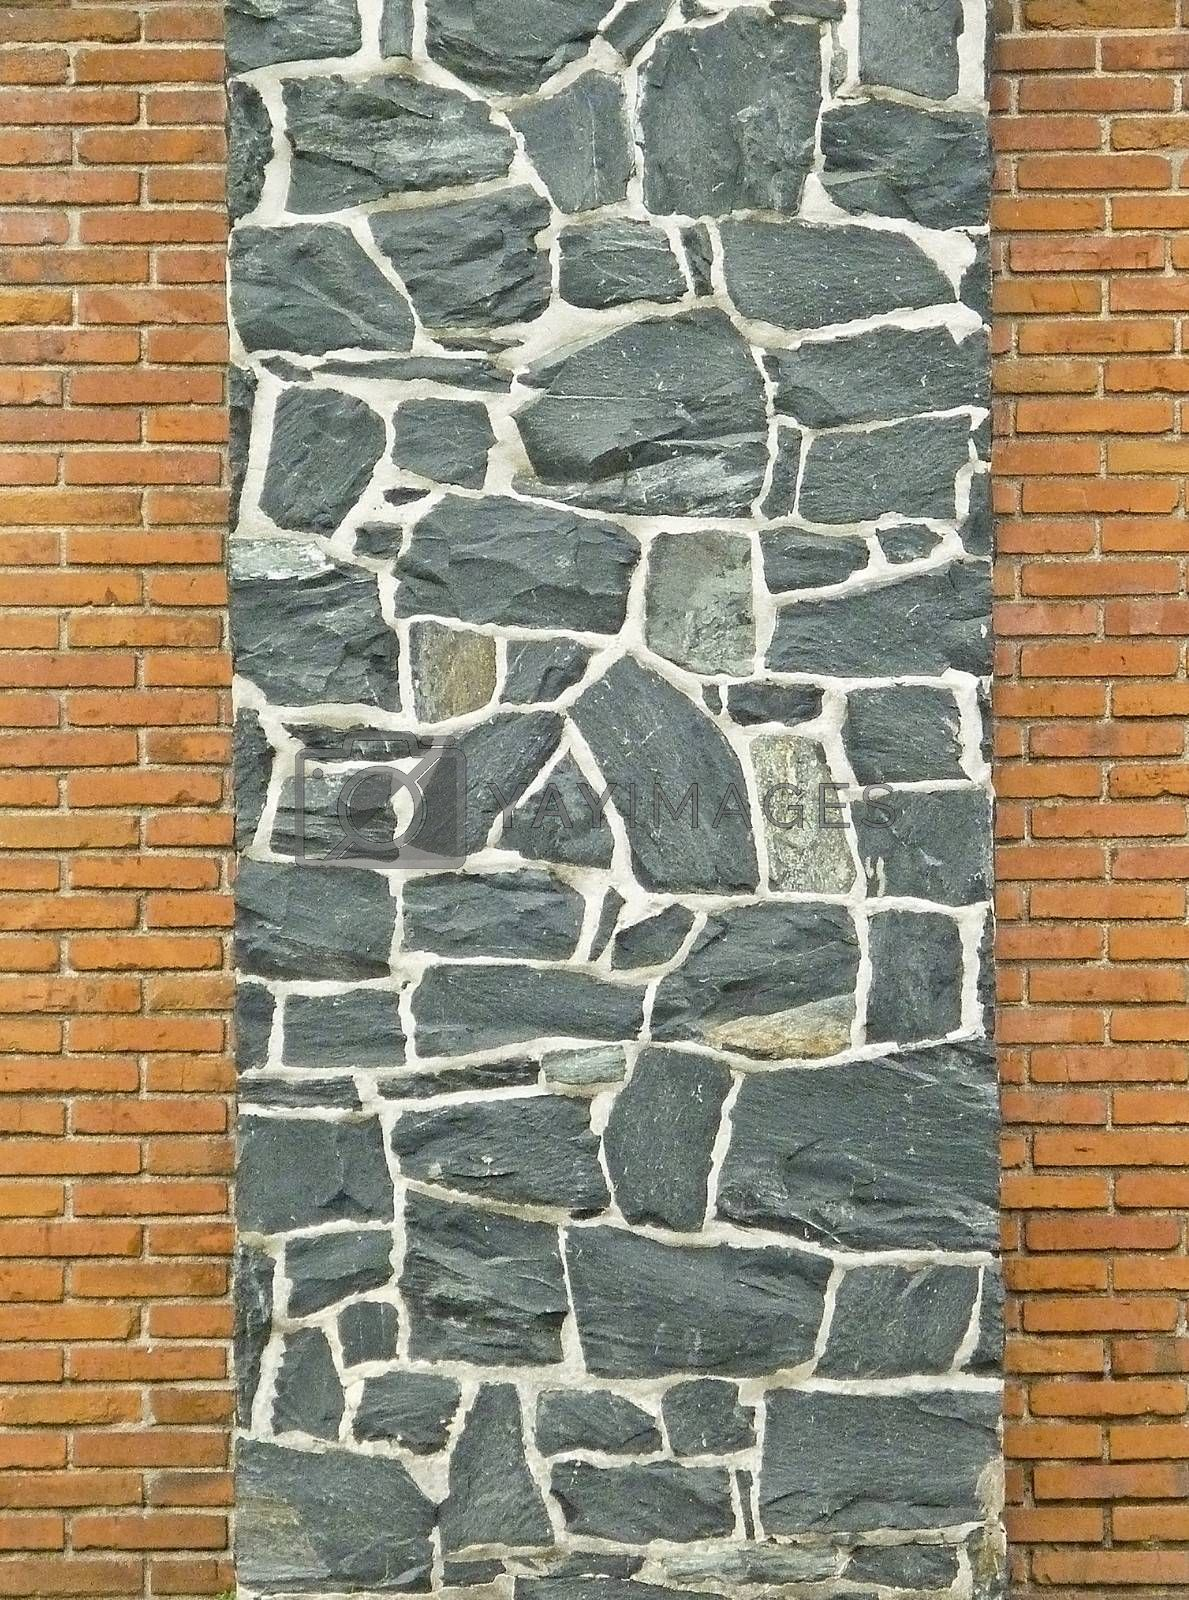 Stone texture relief decorative wall and brick walls in the sides.